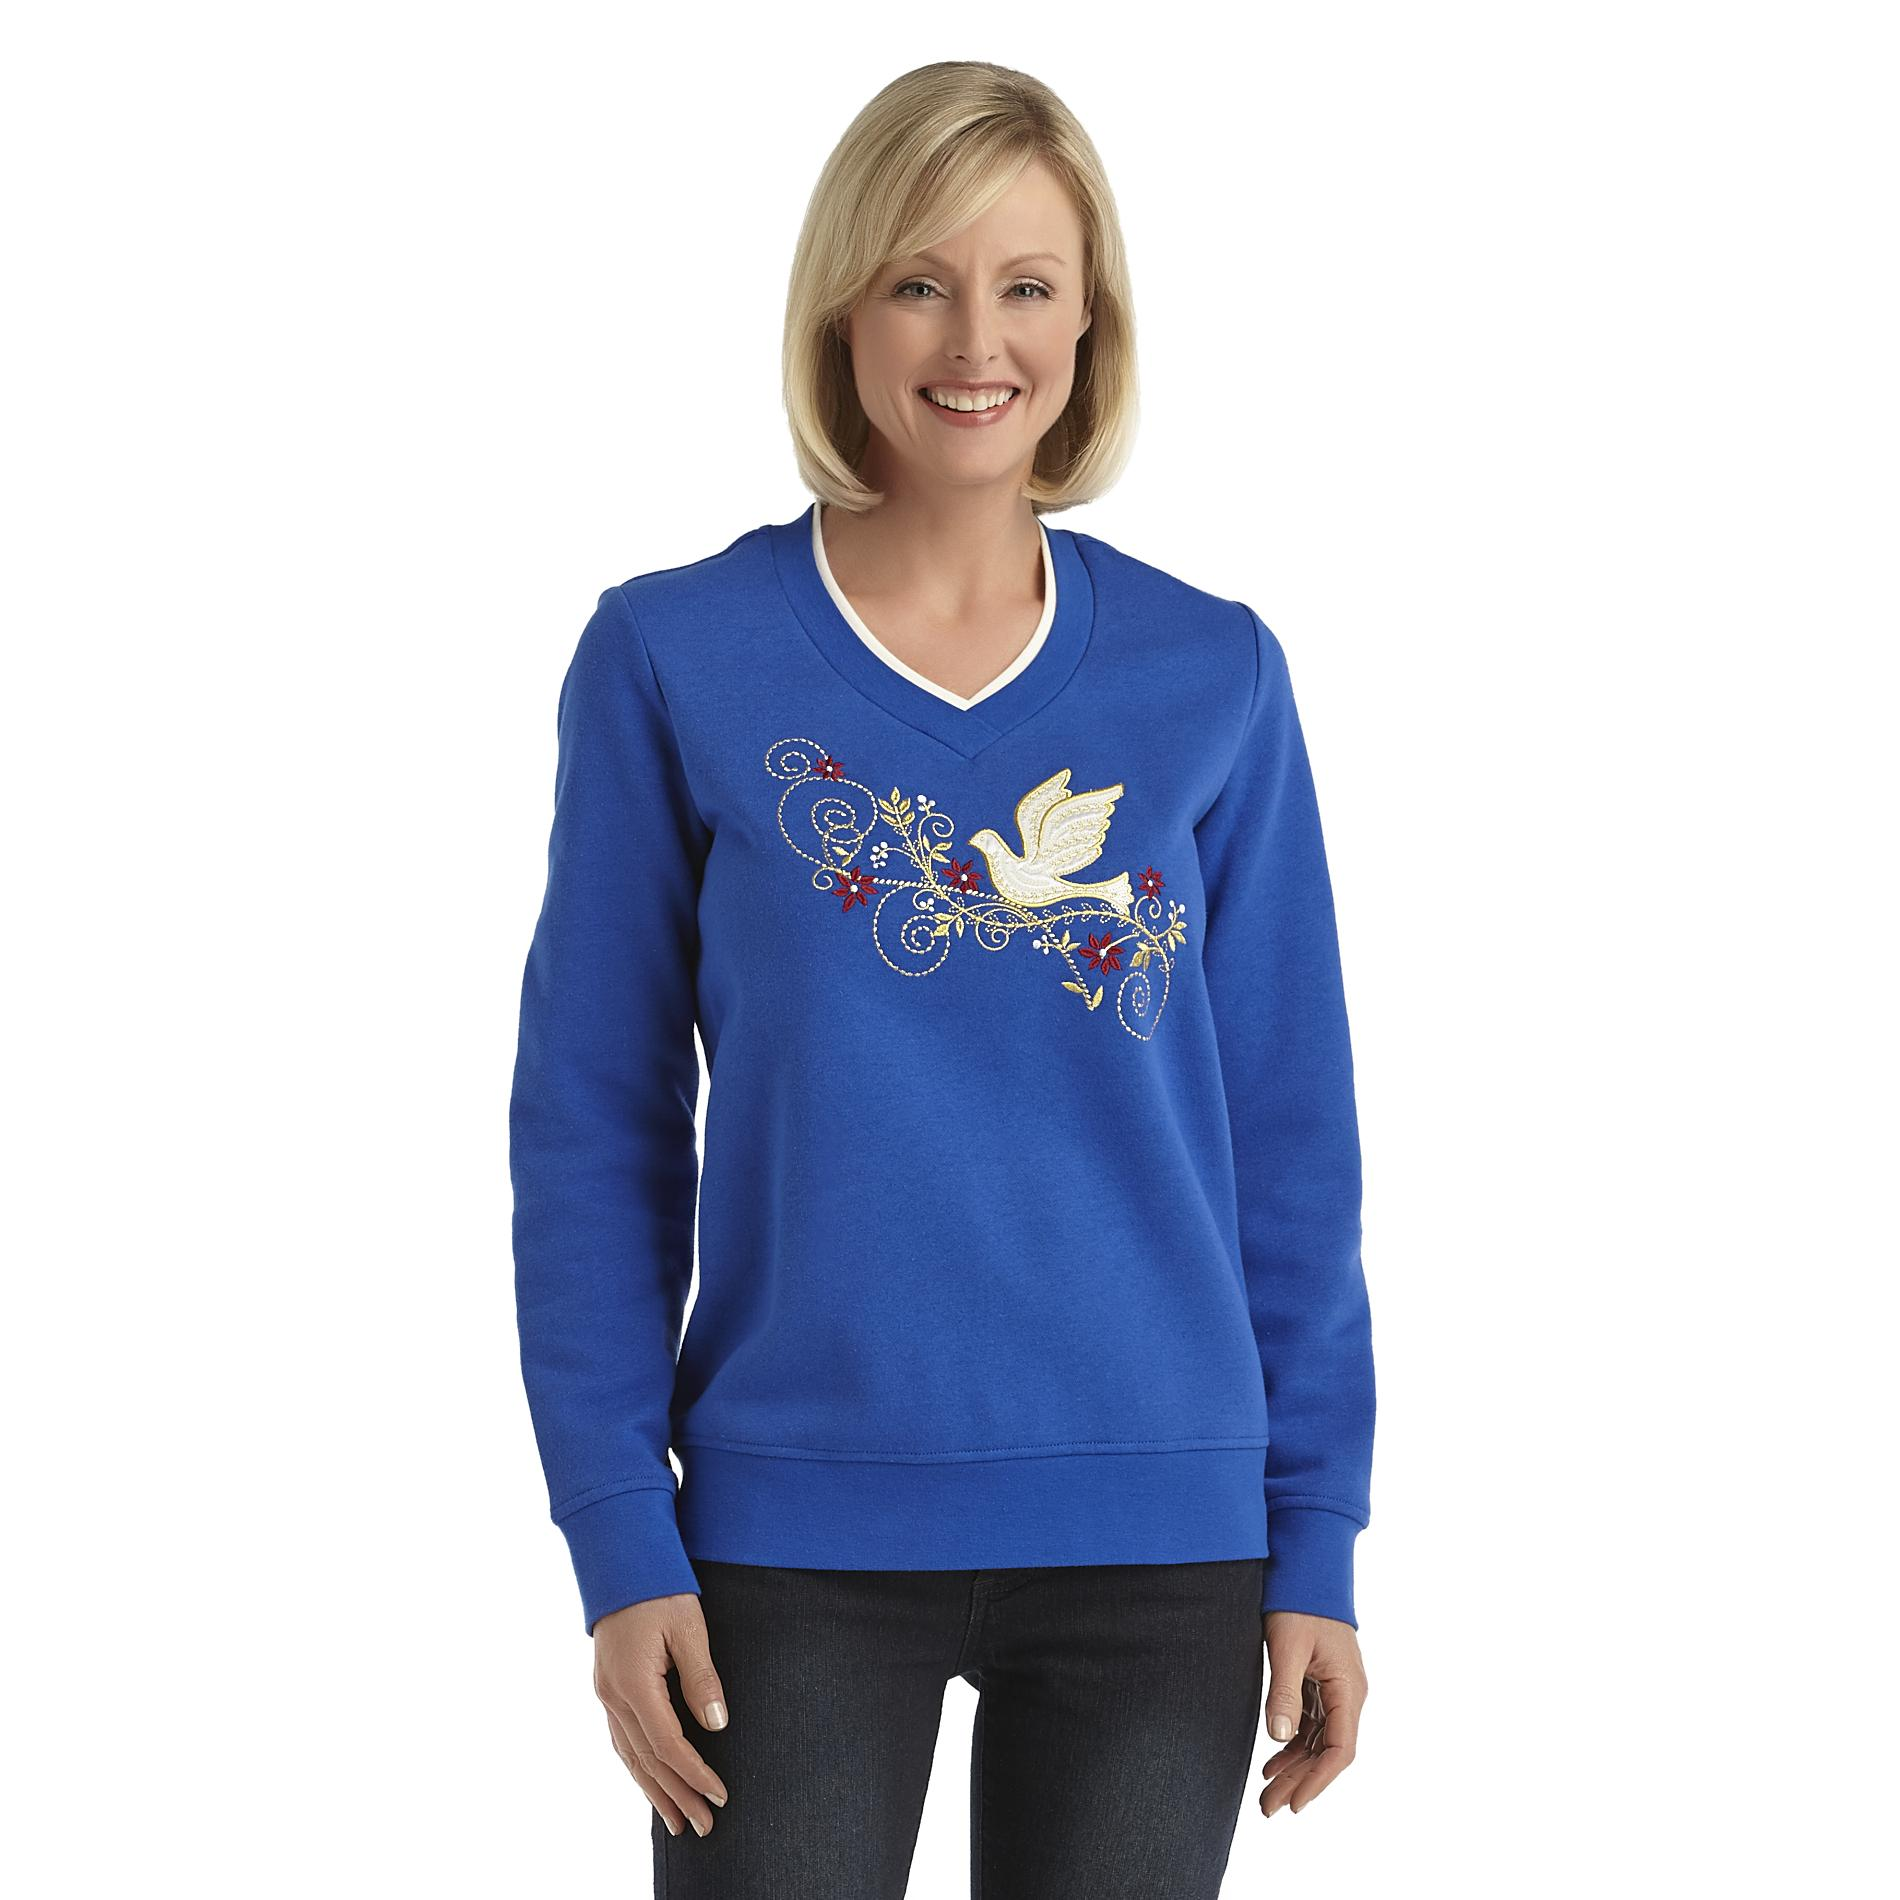 Laura Scott Women's Fleece Holiday Sweatshirt - Christmas Dove at Sears.com